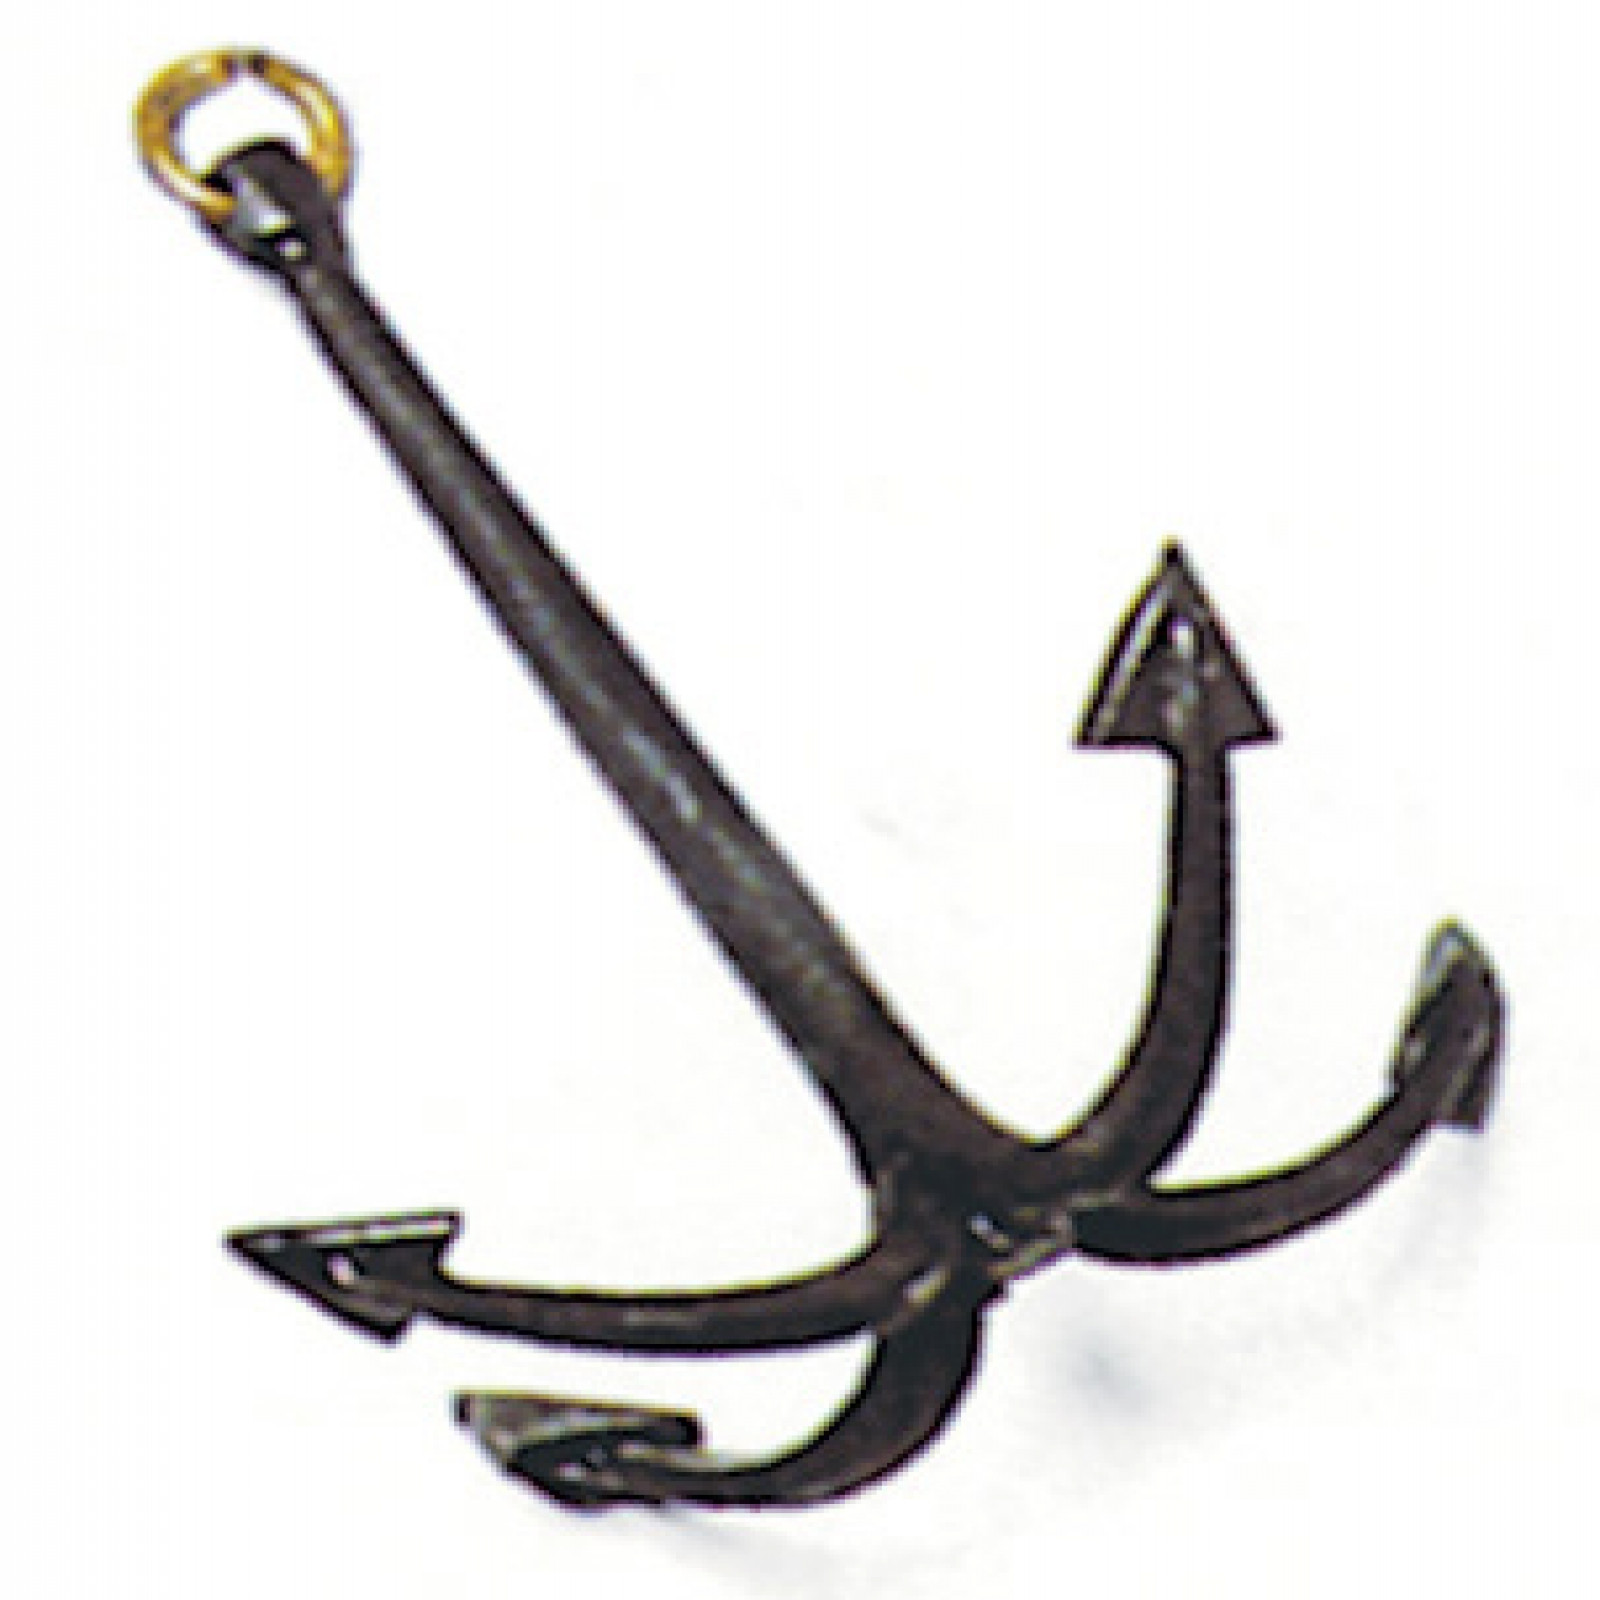 ANCHOR, GRAPNEL 13/16